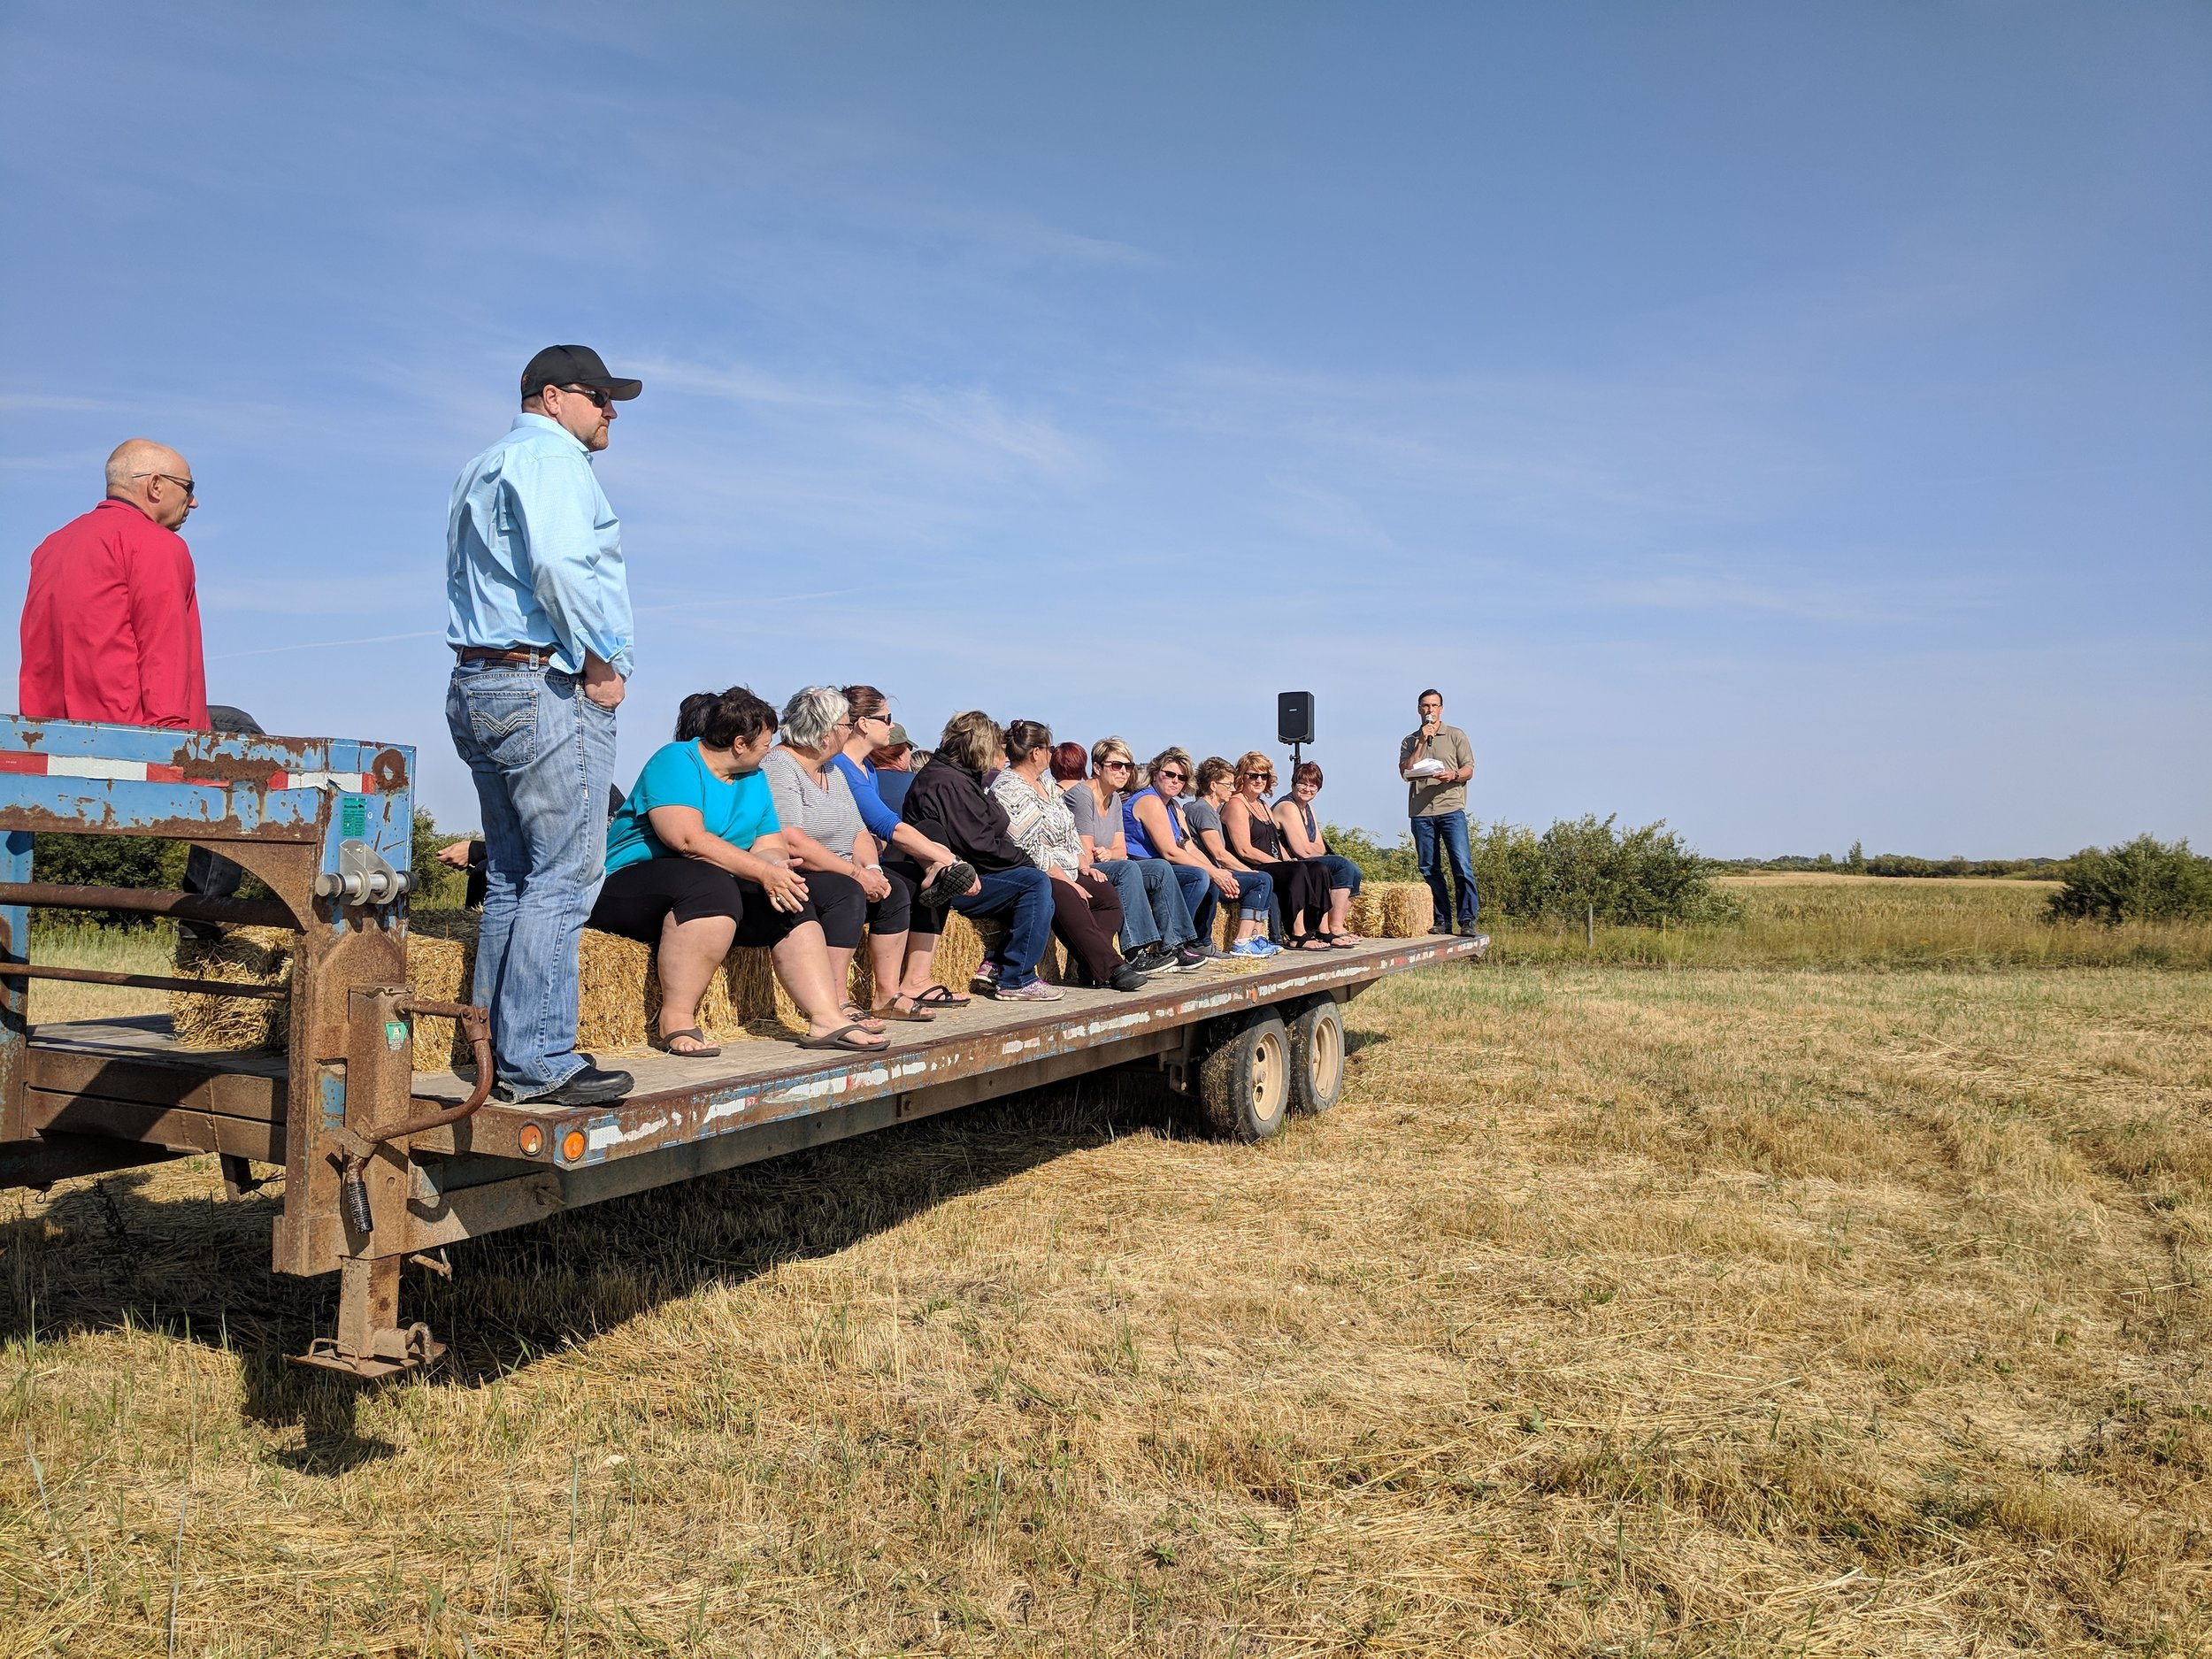 Shawn Cabak from MB Agriculture discussing winter grazing options at the MASC Tour at the Brookdale Farm 2018